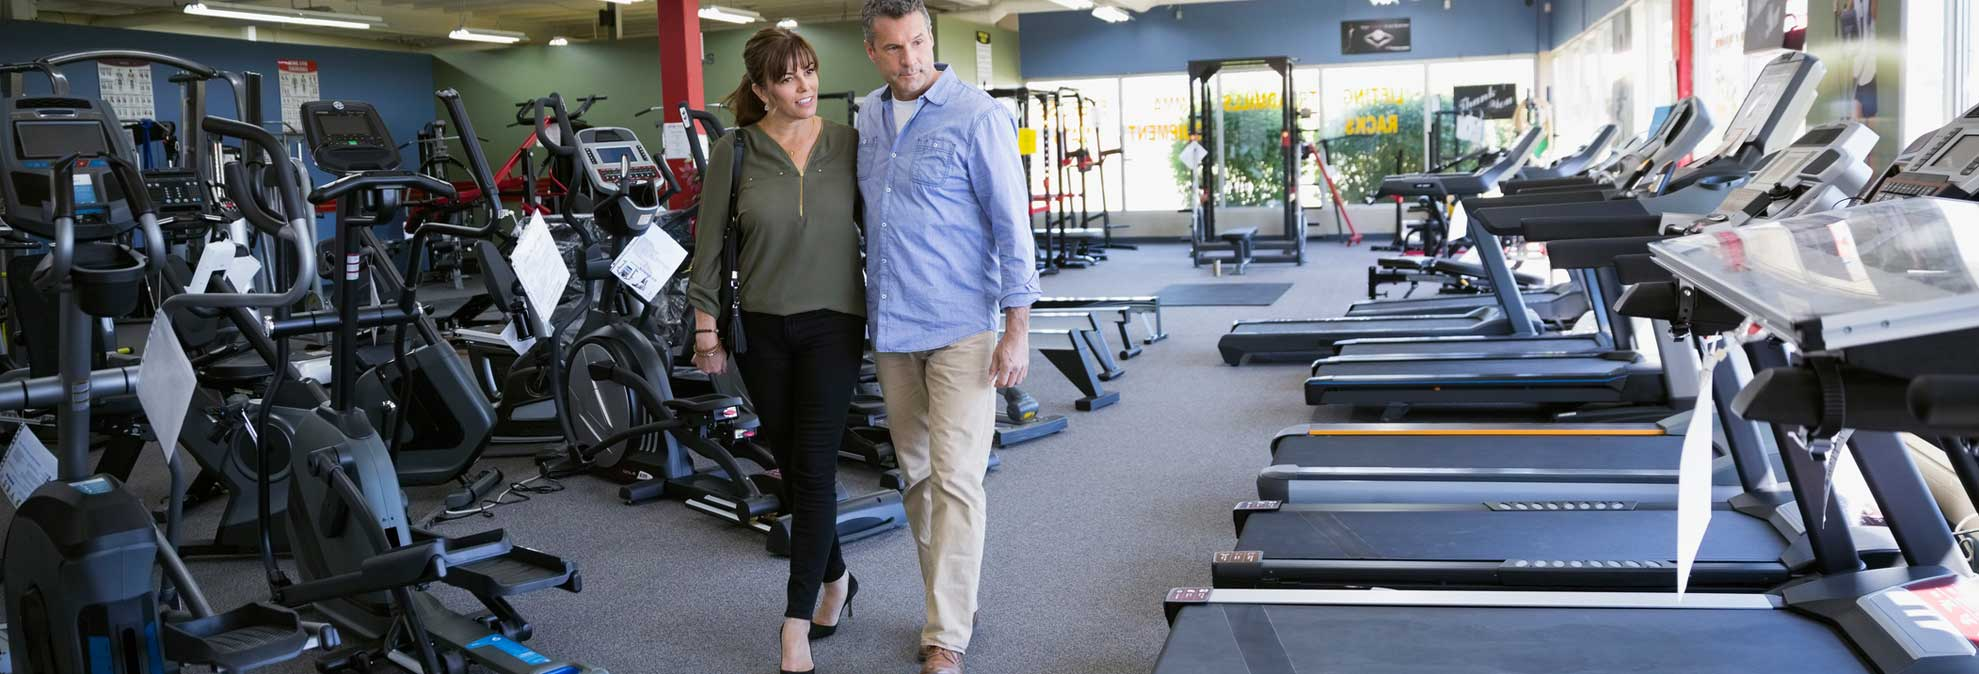 Best Places To Buy Exercise Equipment Consumer Reports